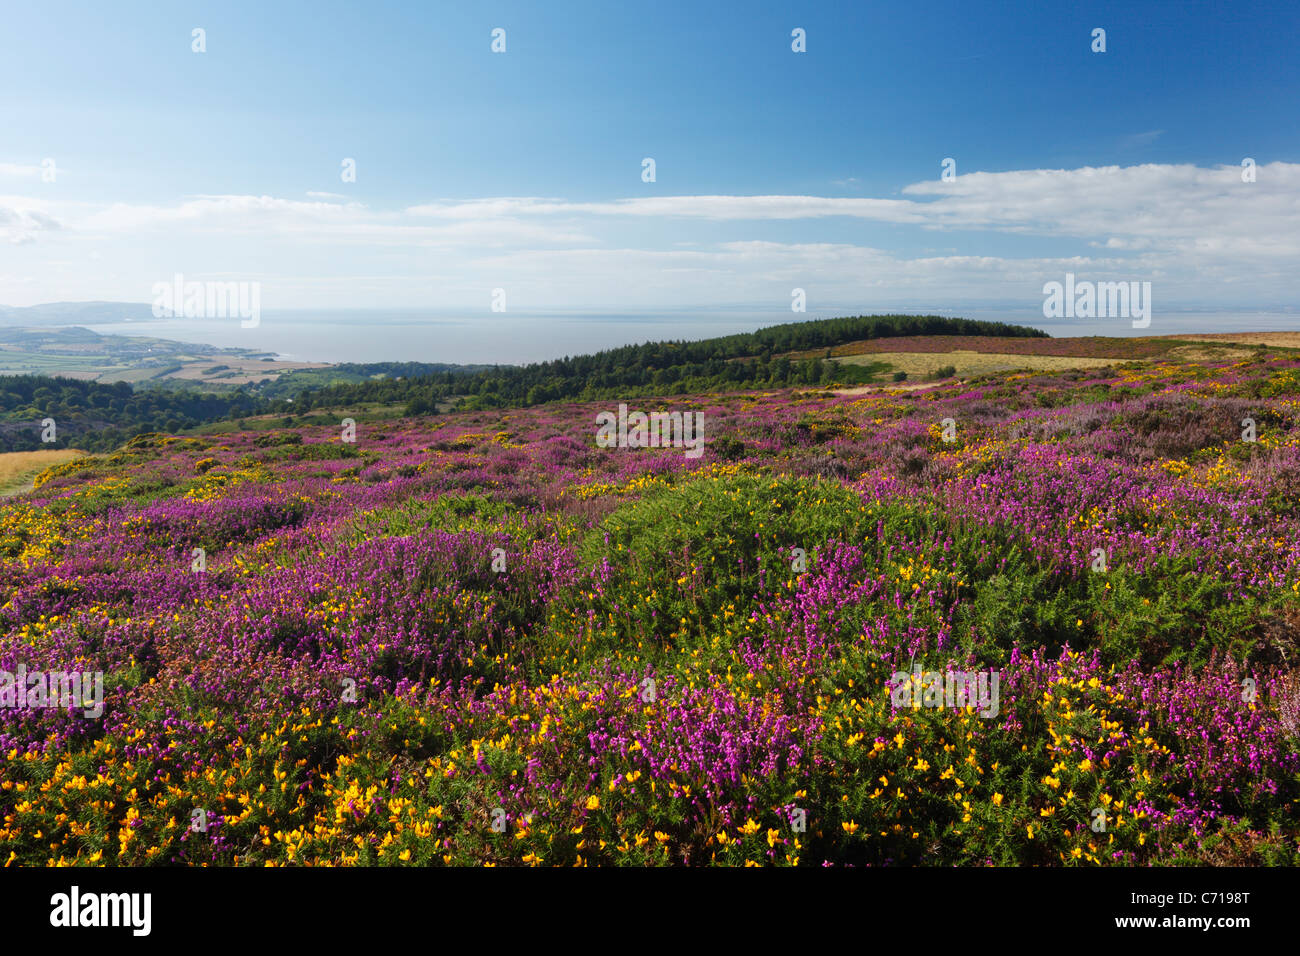 Heather and Gorse on Beacon Hill with views towards Watchet and Minehead. The Quantock Hills. Somerset. England. - Stock Image